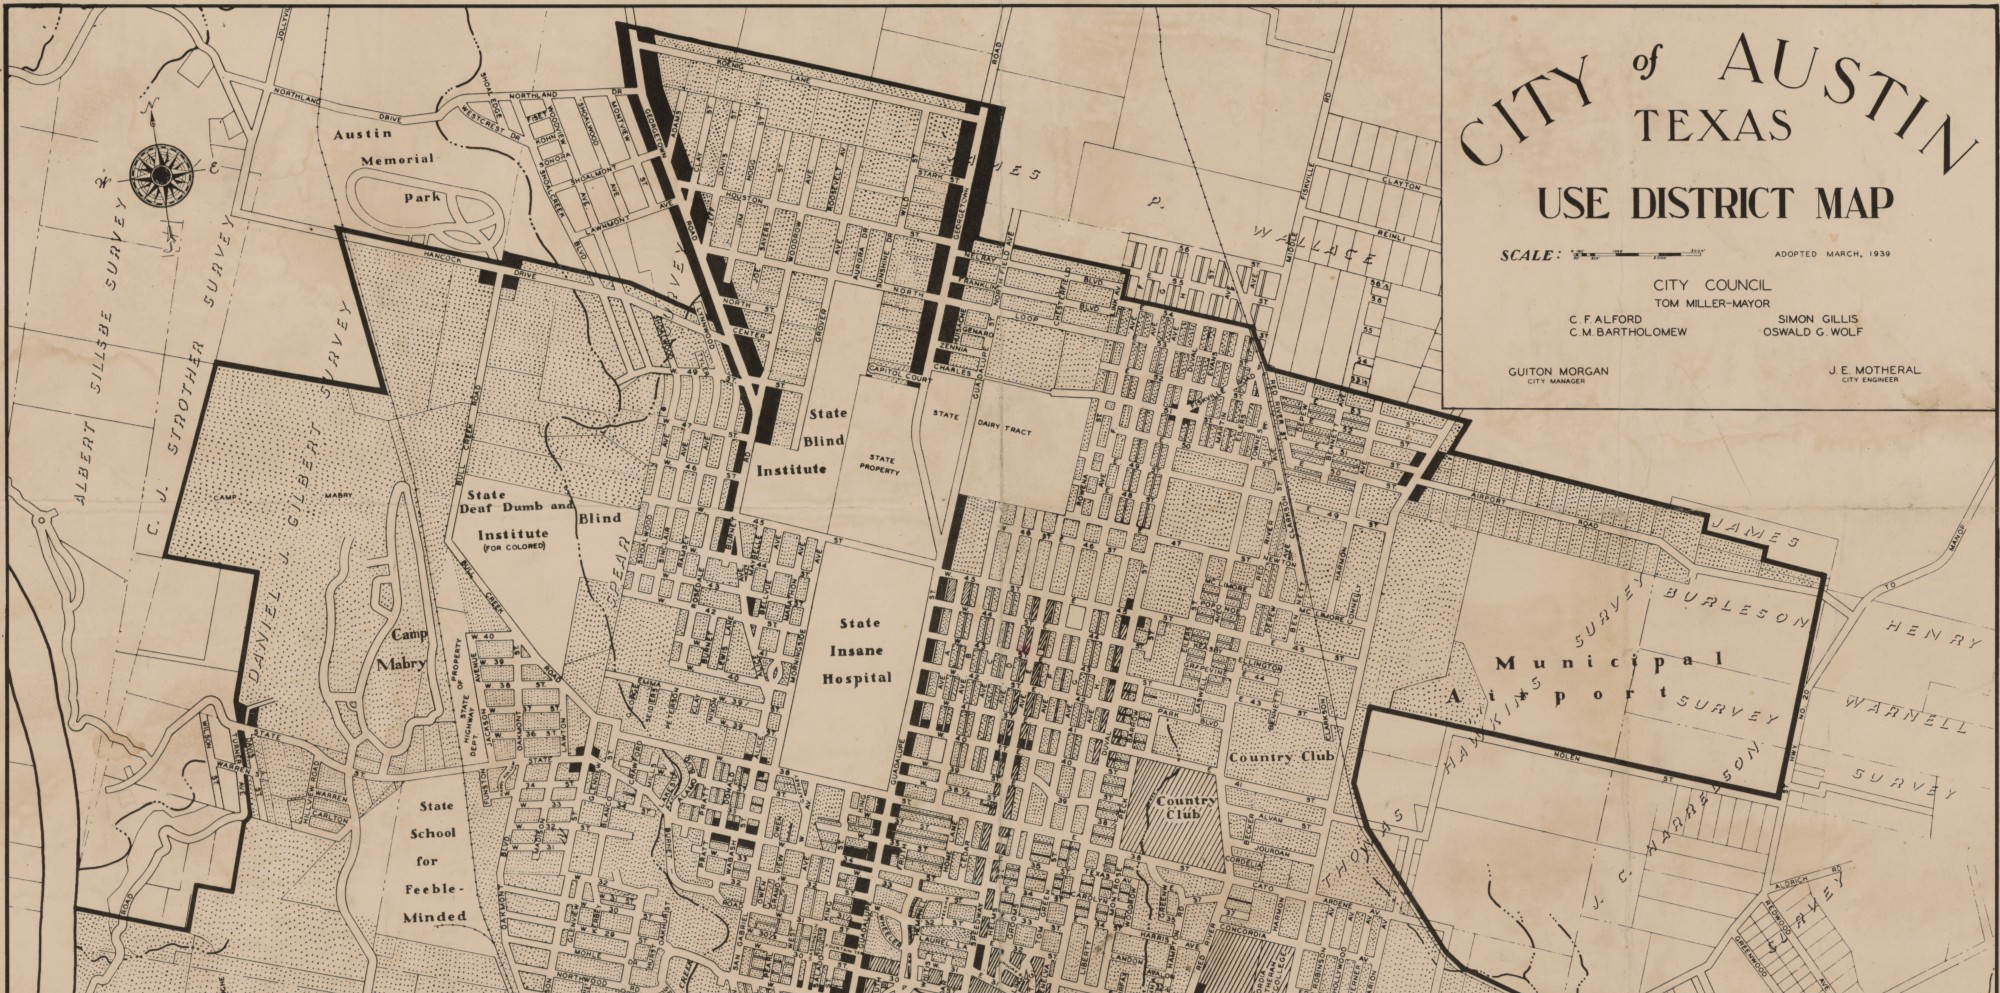 City of Austin Texas Use District Map, 1939 By Austin Chamber of ...